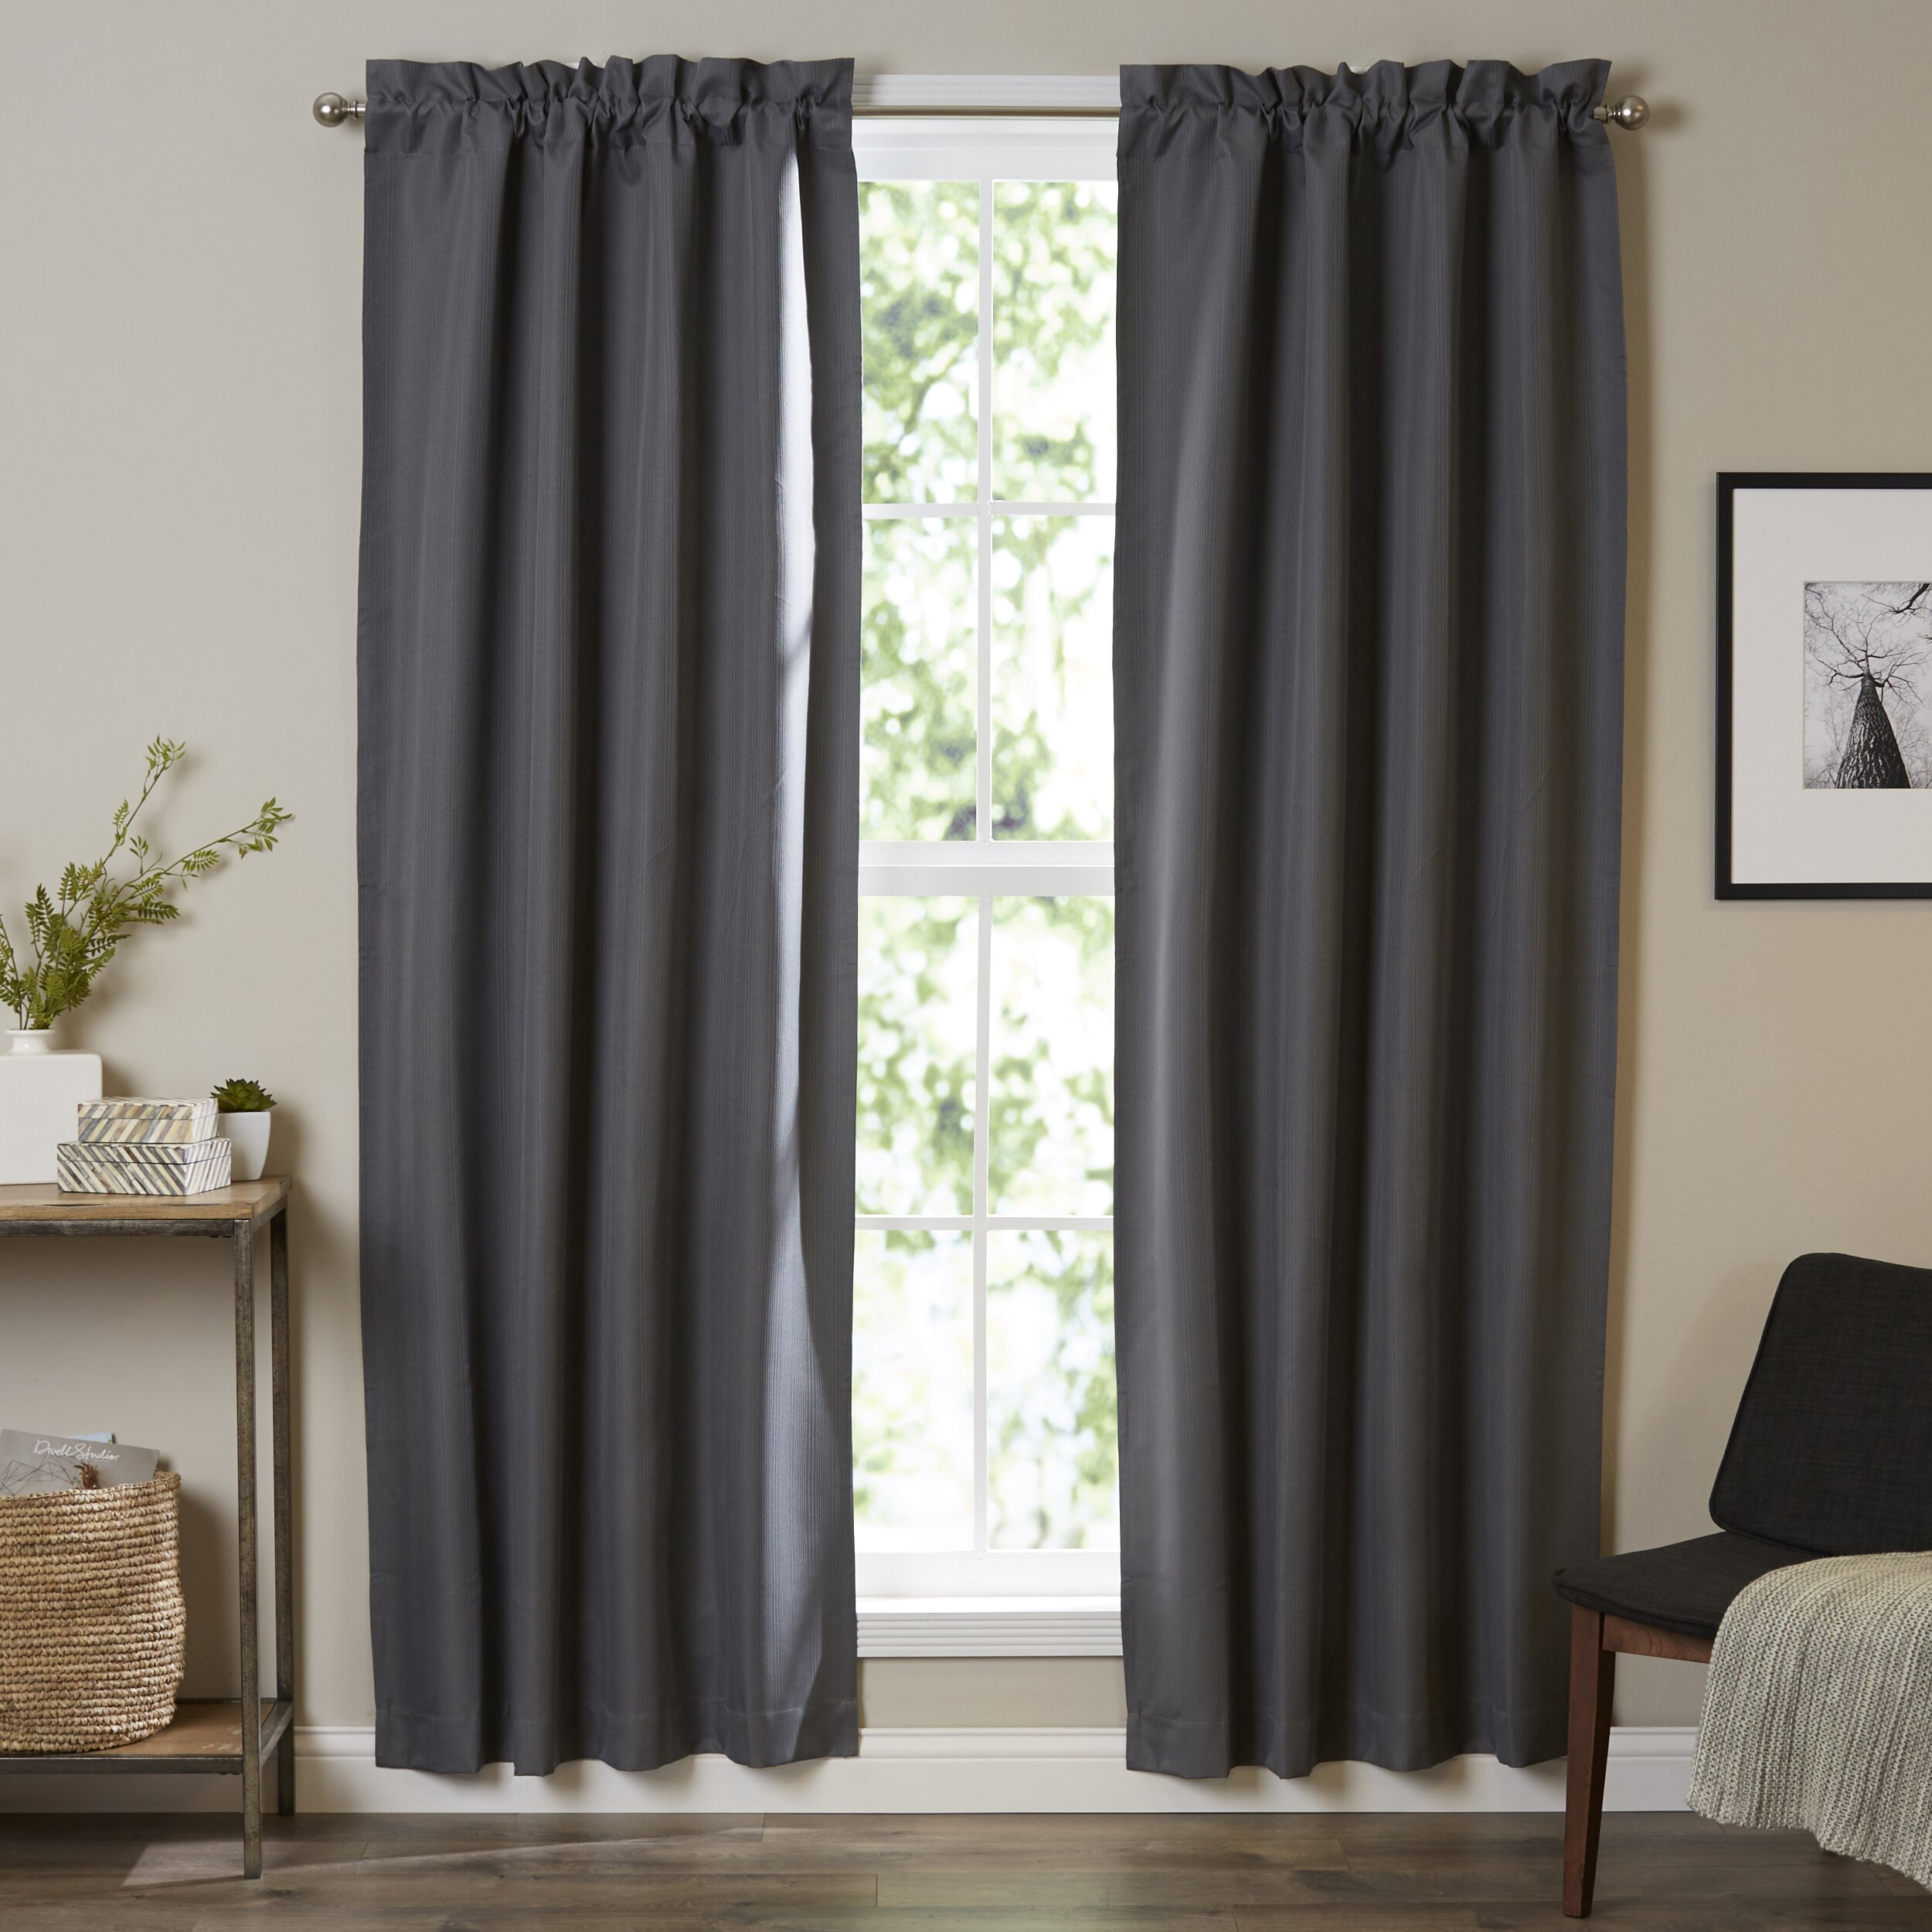 Navy blue bedroom curtains - Roger Blackout Thermal Single Rod Pocket Curtain Panel